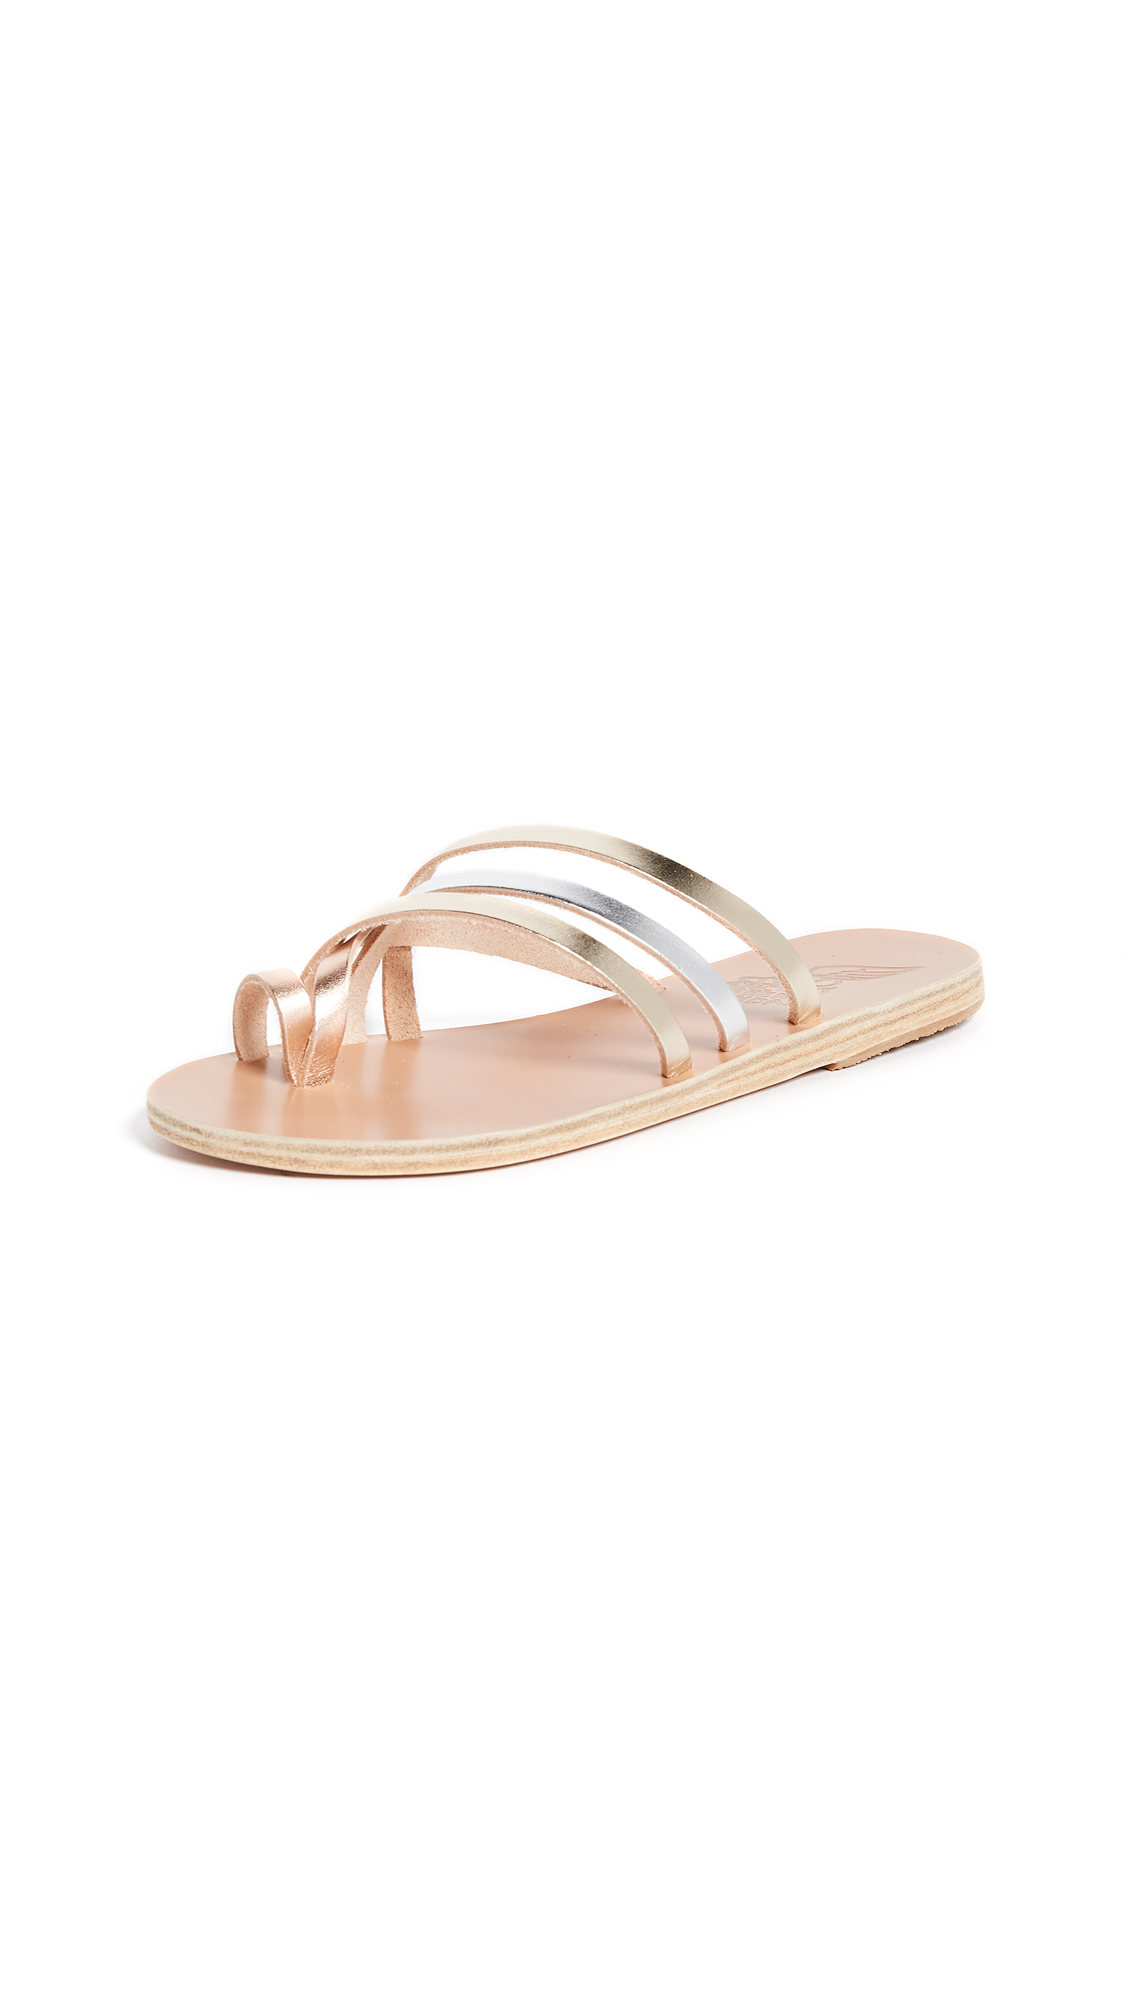 Ancient Greek Sandals Apli Amalia Sandals - Metallic Mix